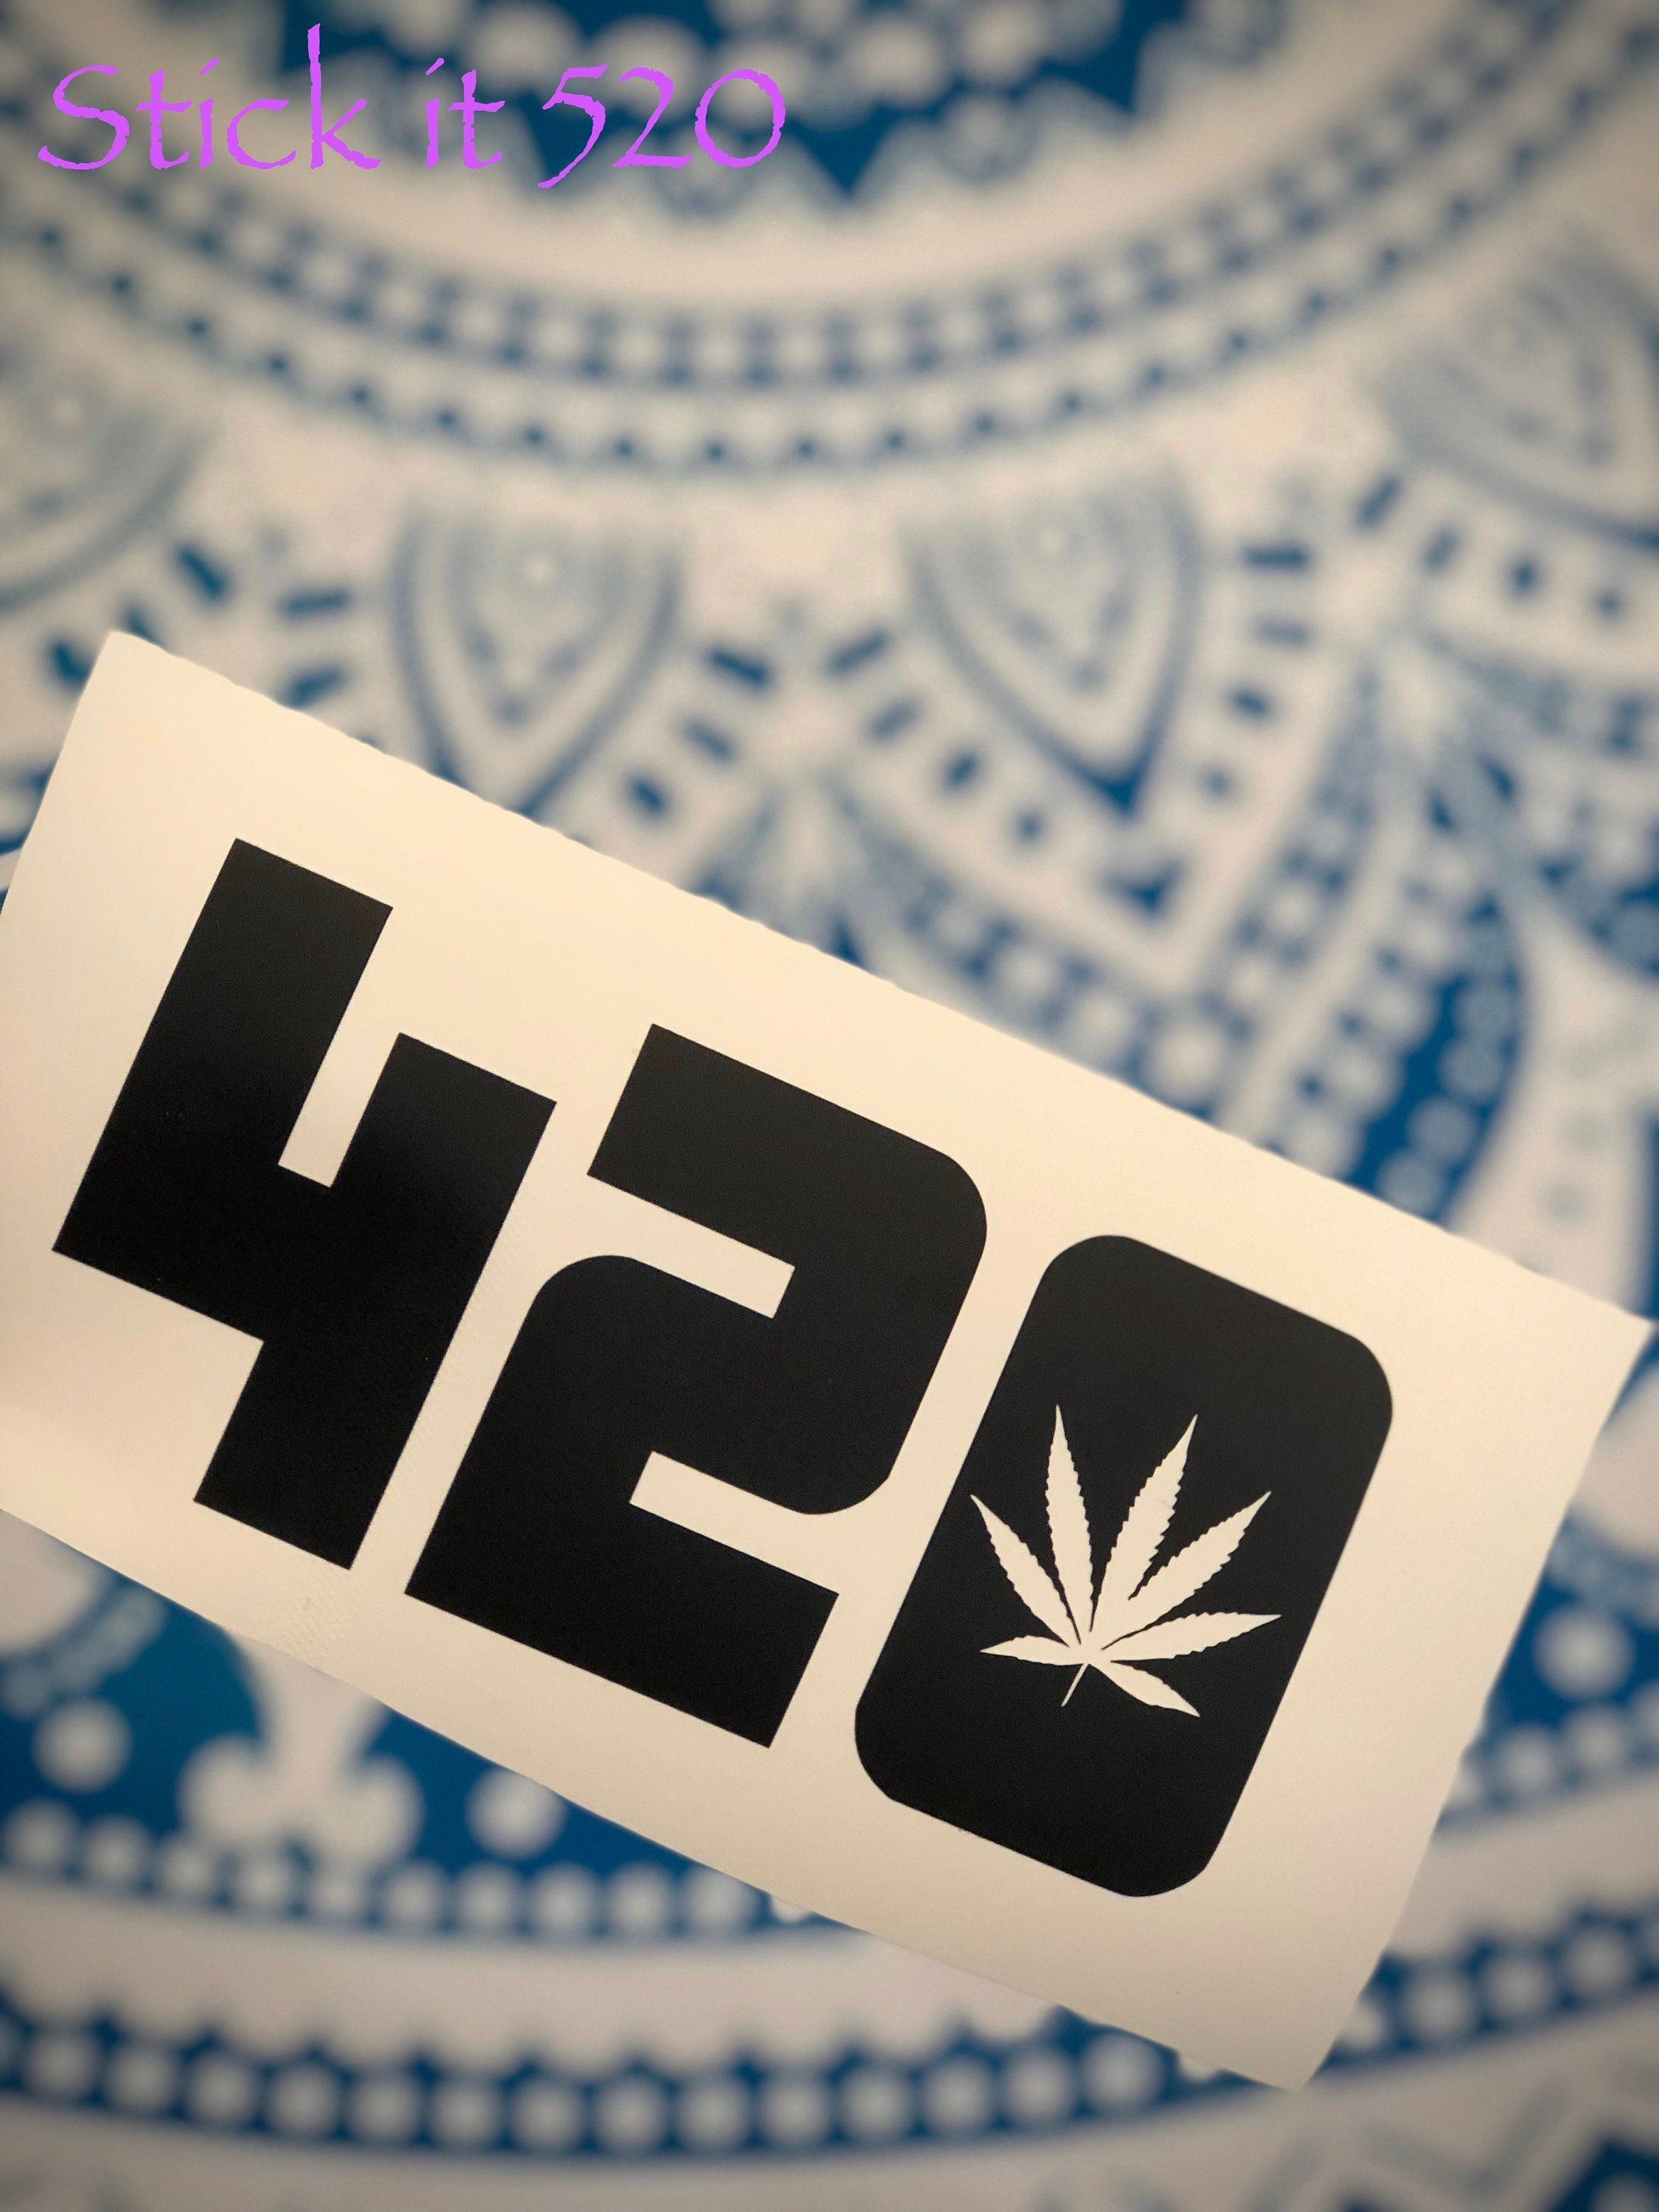 Pin By Kenneth Kokal On Stoner Art Hippie Decals Laptop Stickers Laptop Decal [ 3000 x 2250 Pixel ]